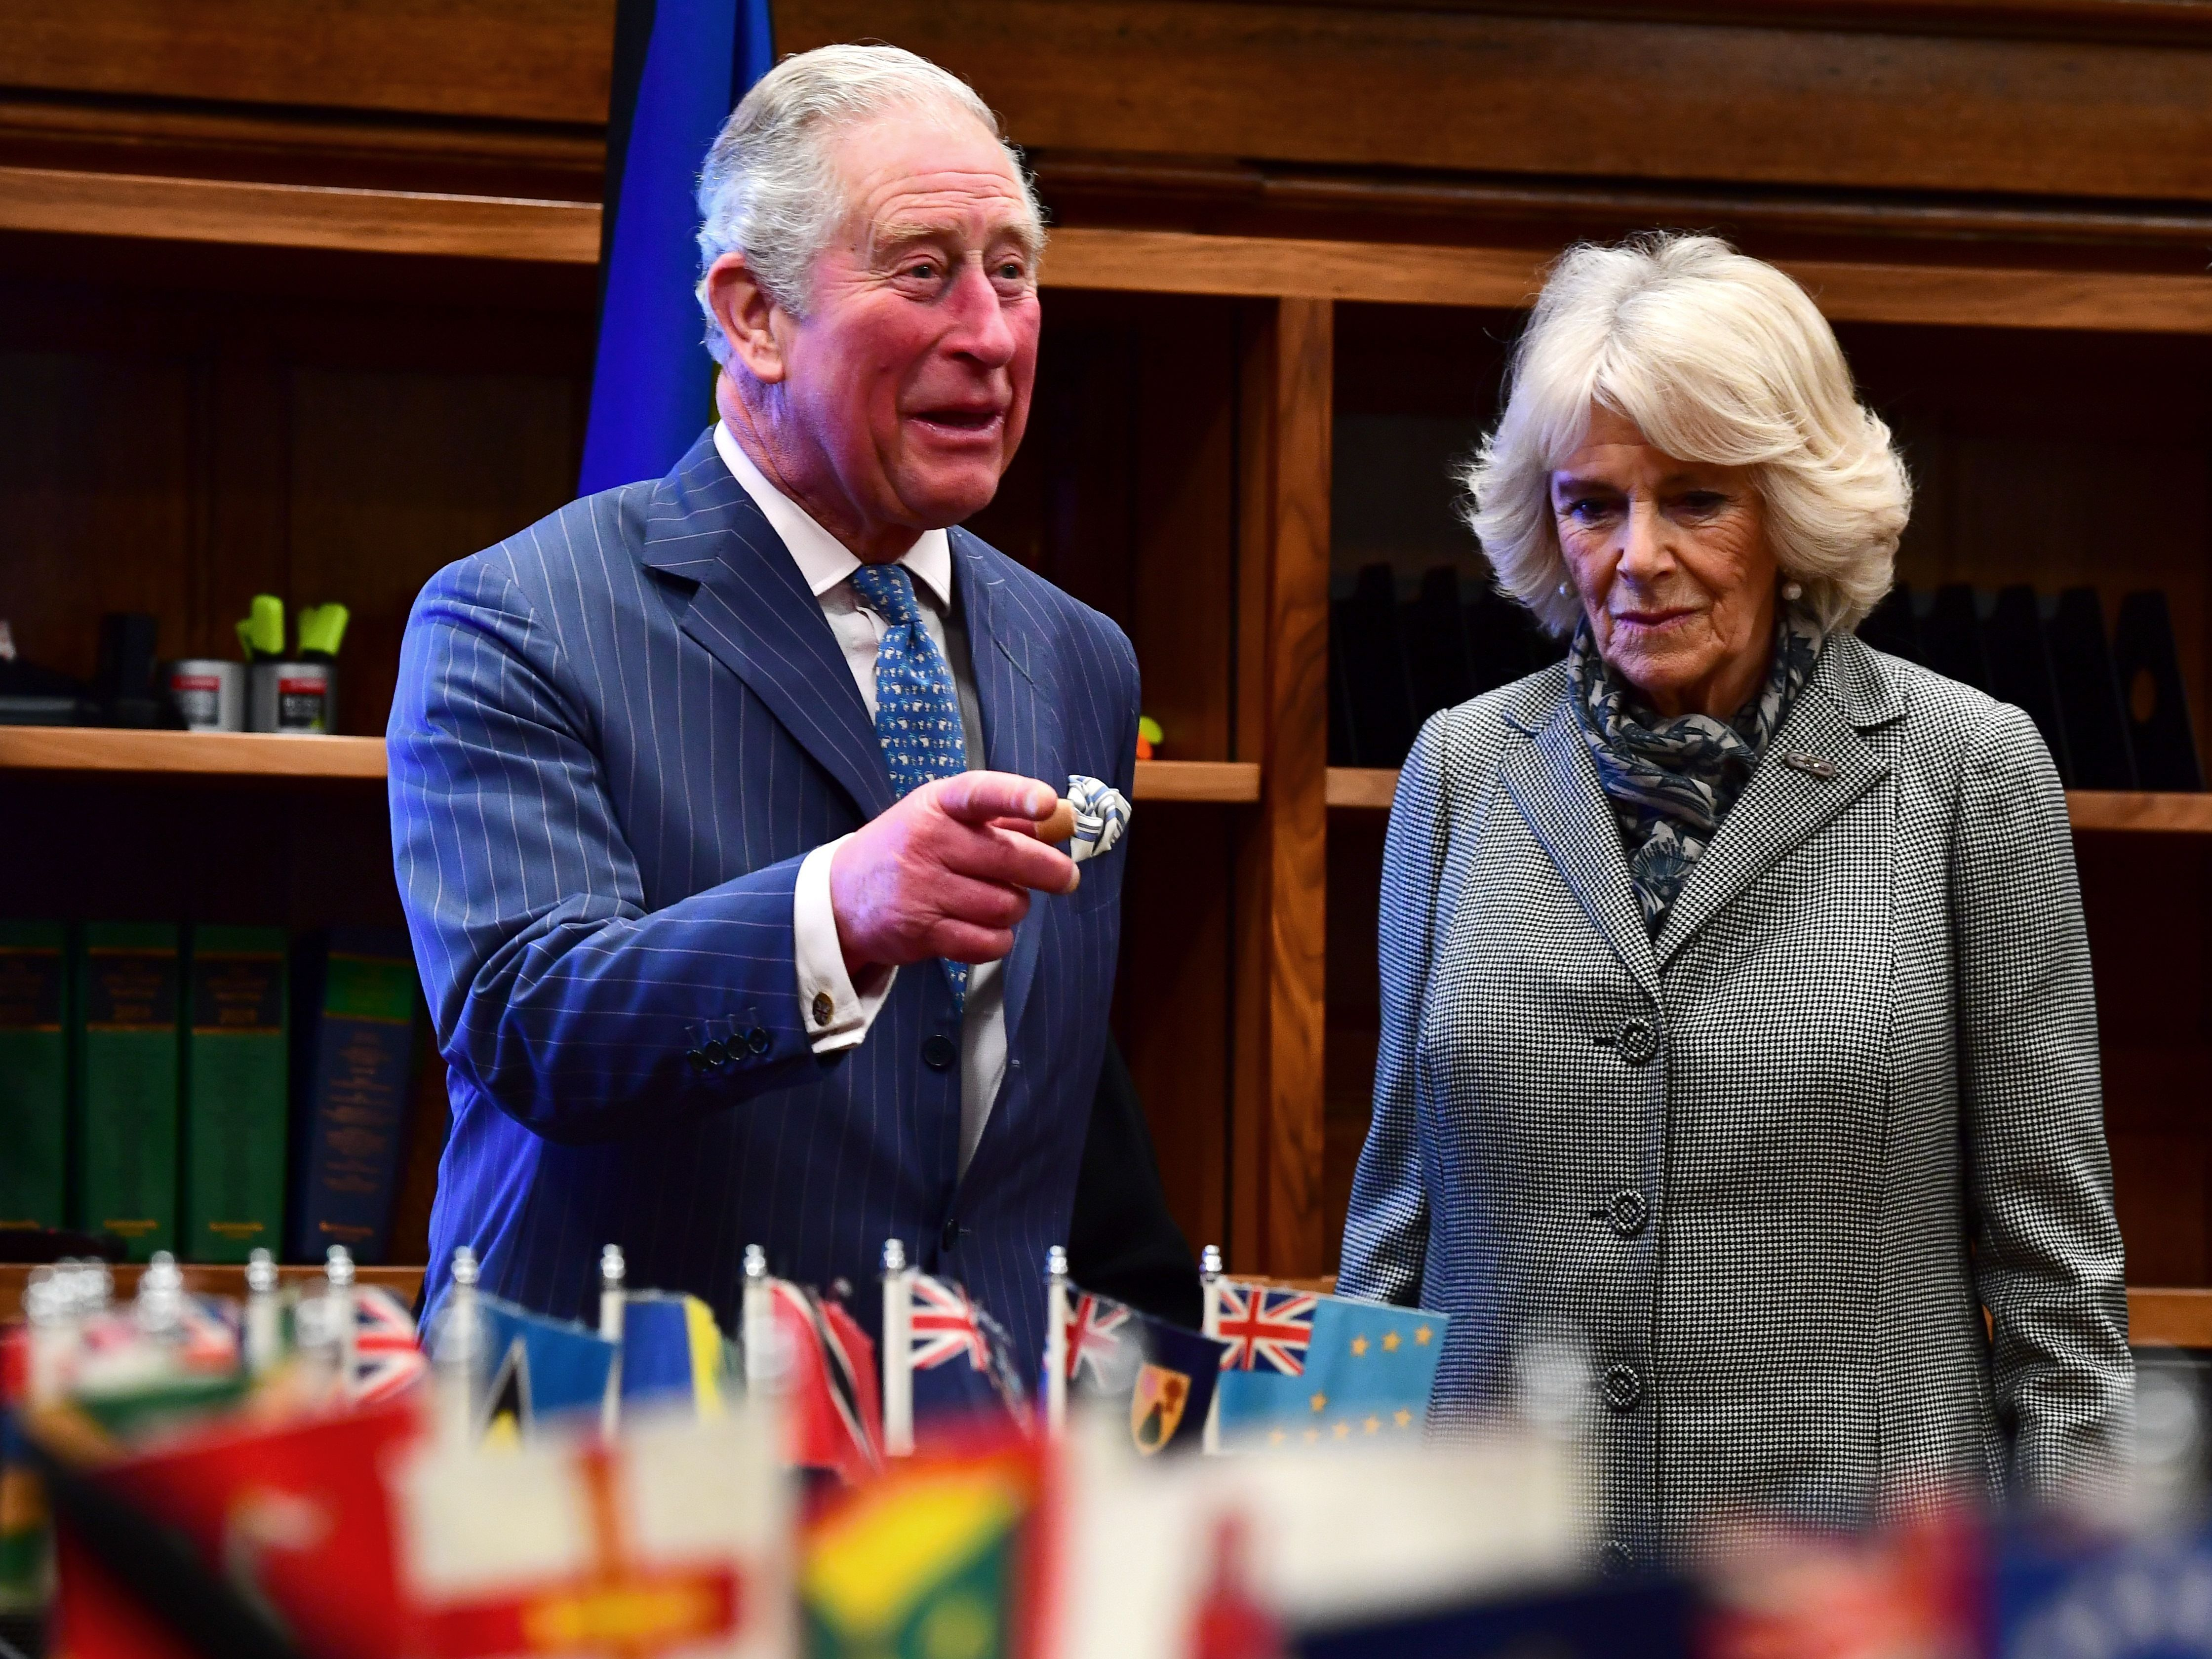 Charles and Camilla visit the Supreme Court.